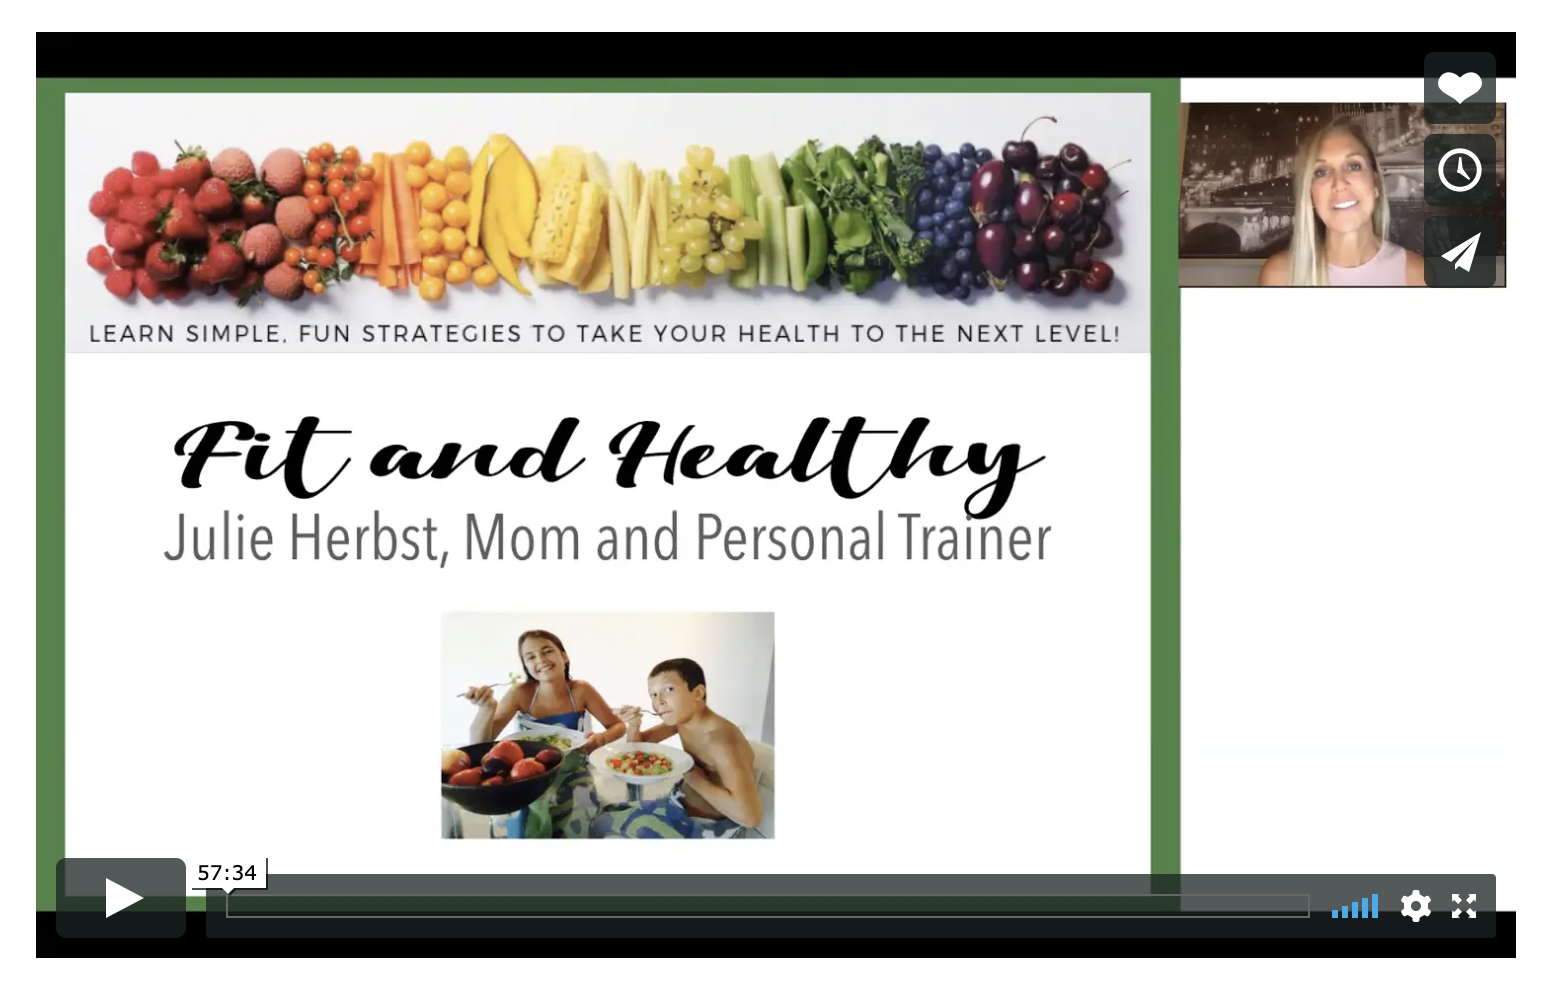 https://vimeopro.com/jherbst/fit-and-healthy